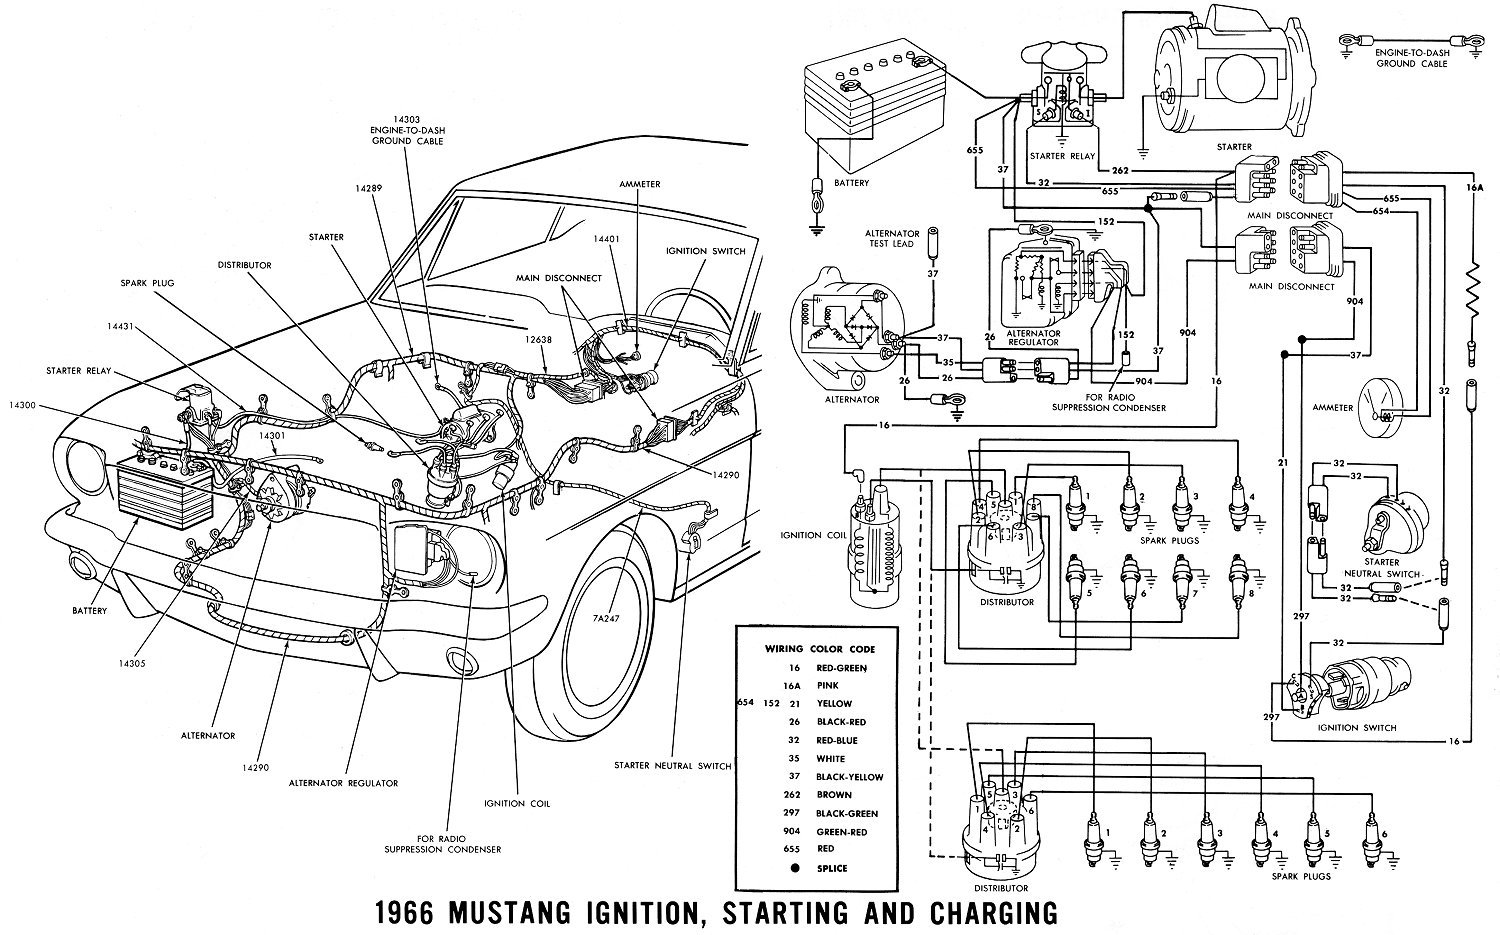 1978 mgb fan relay wiring diagram